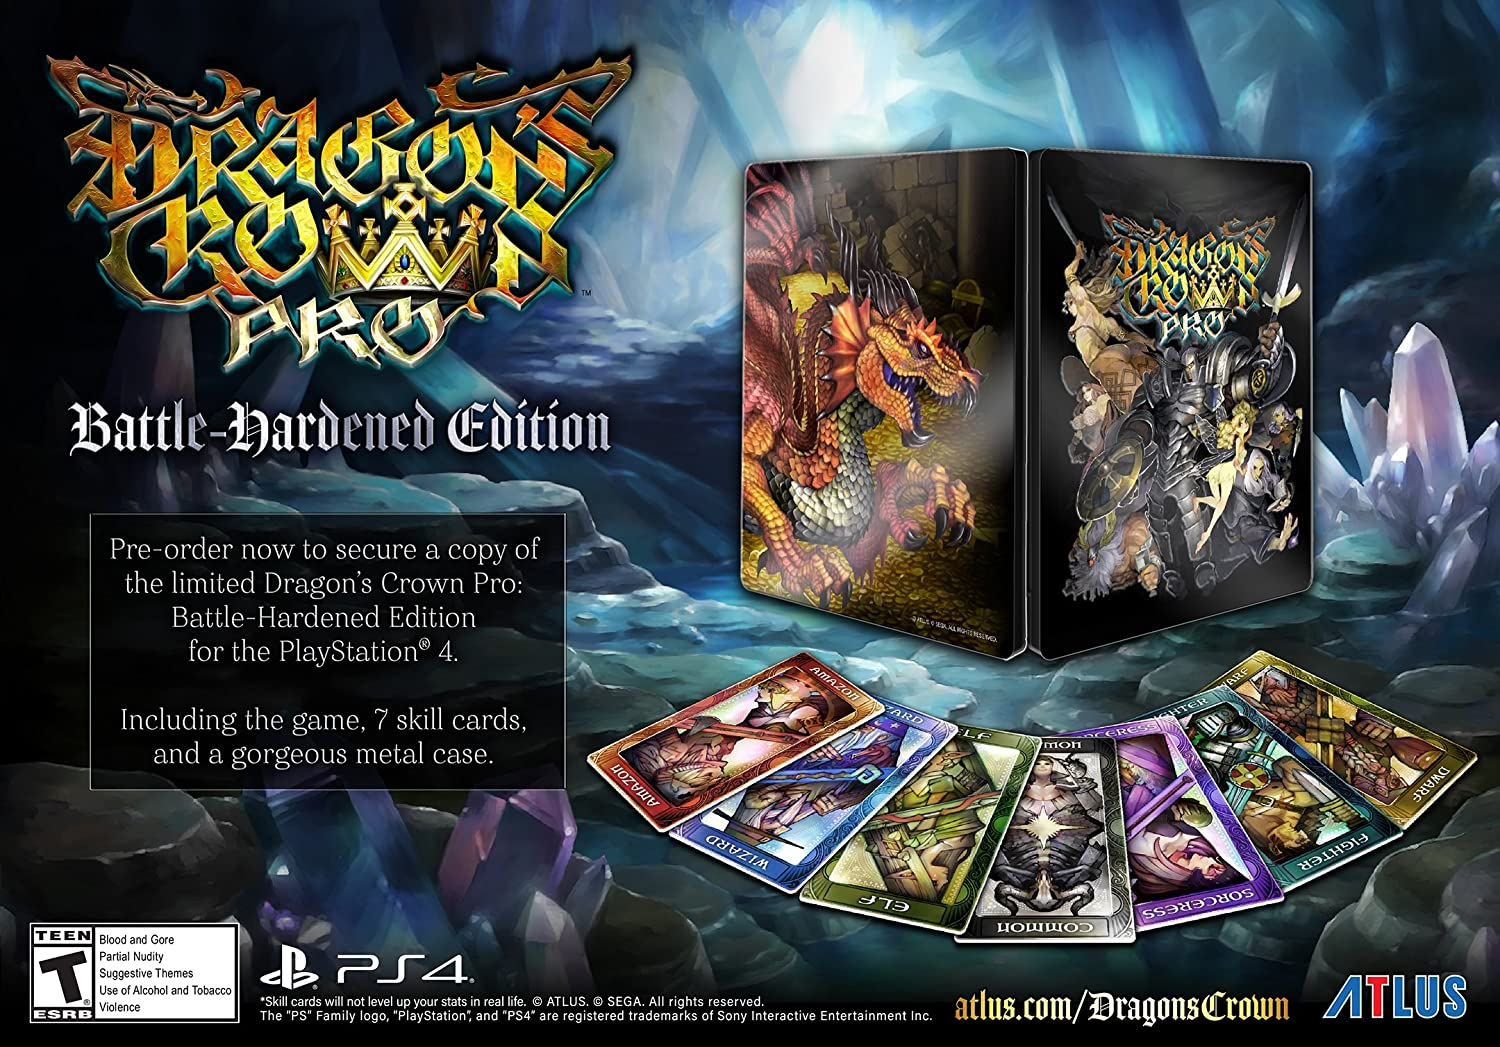 Ps3] dragon's crown limited deluxe edition and dengeki special box.